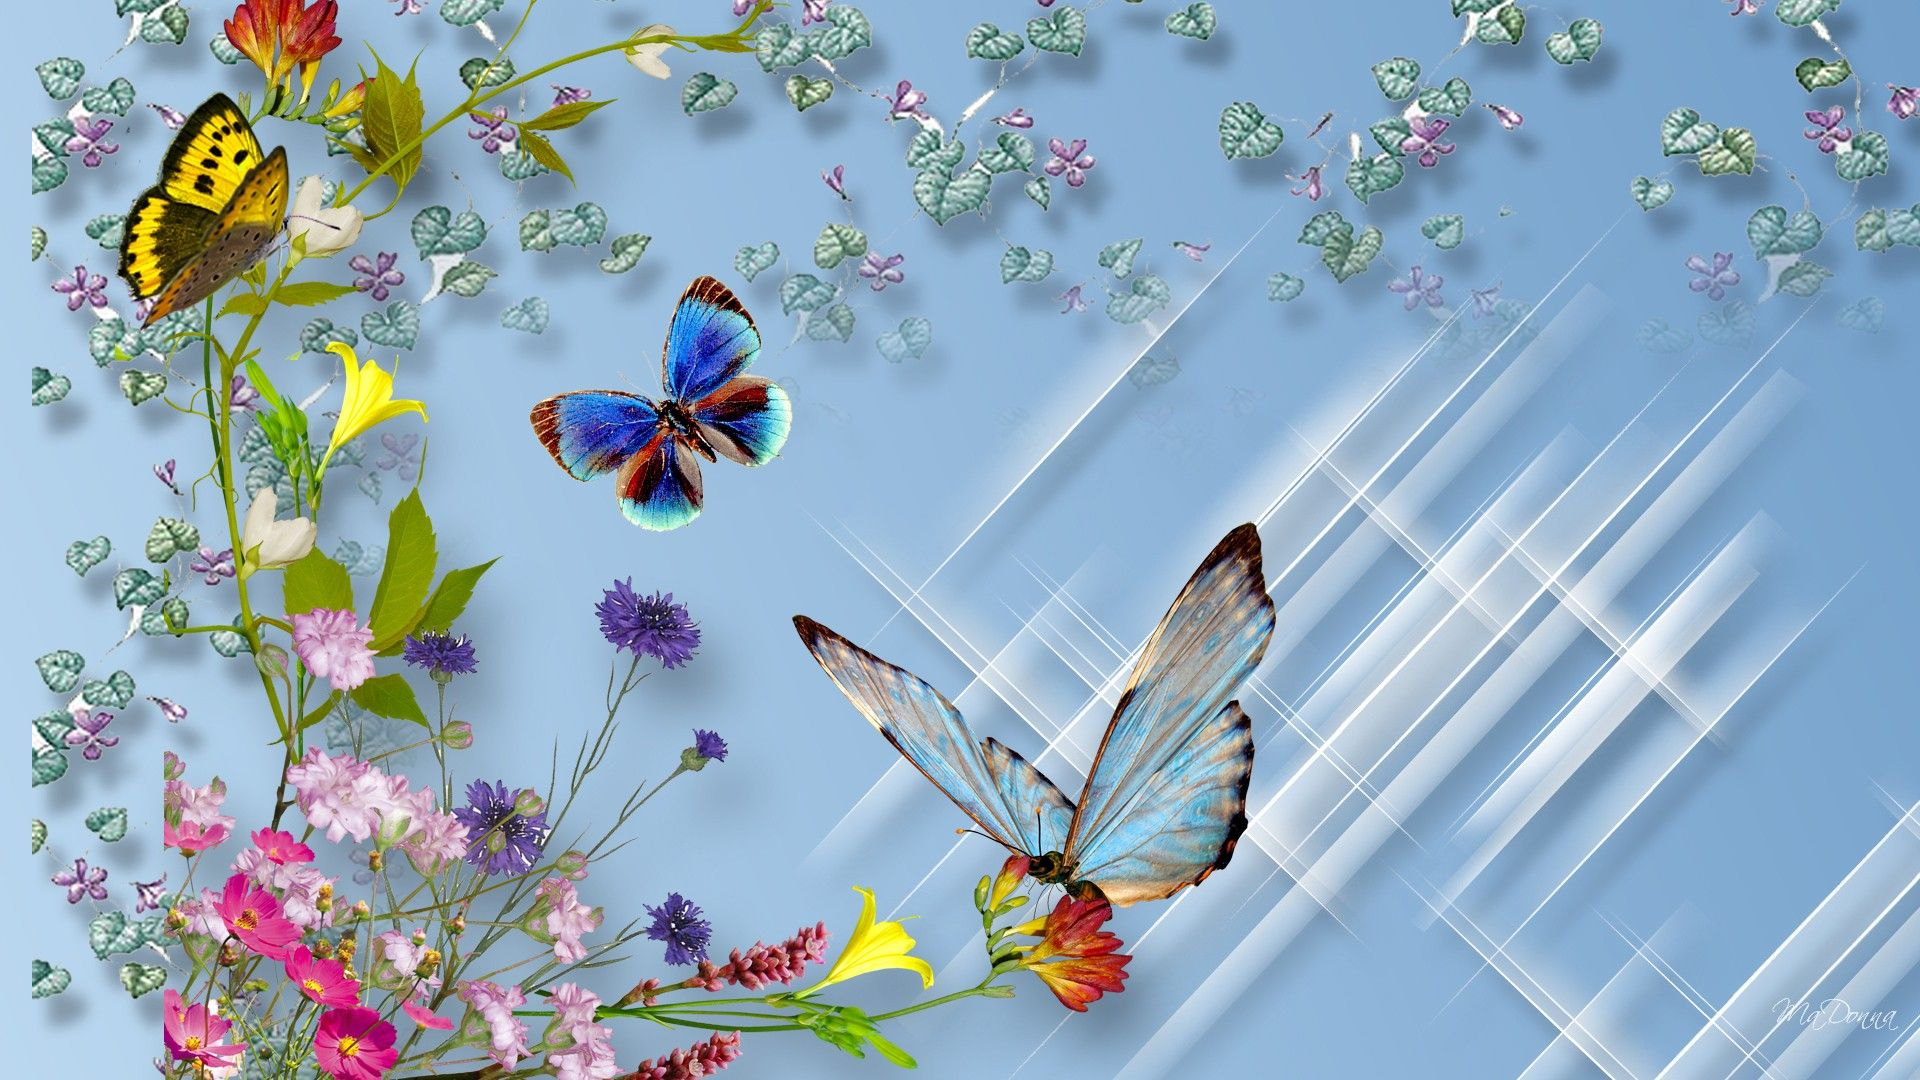 Butterflies and Flowers Full HD Wallpaper and Background Image ...